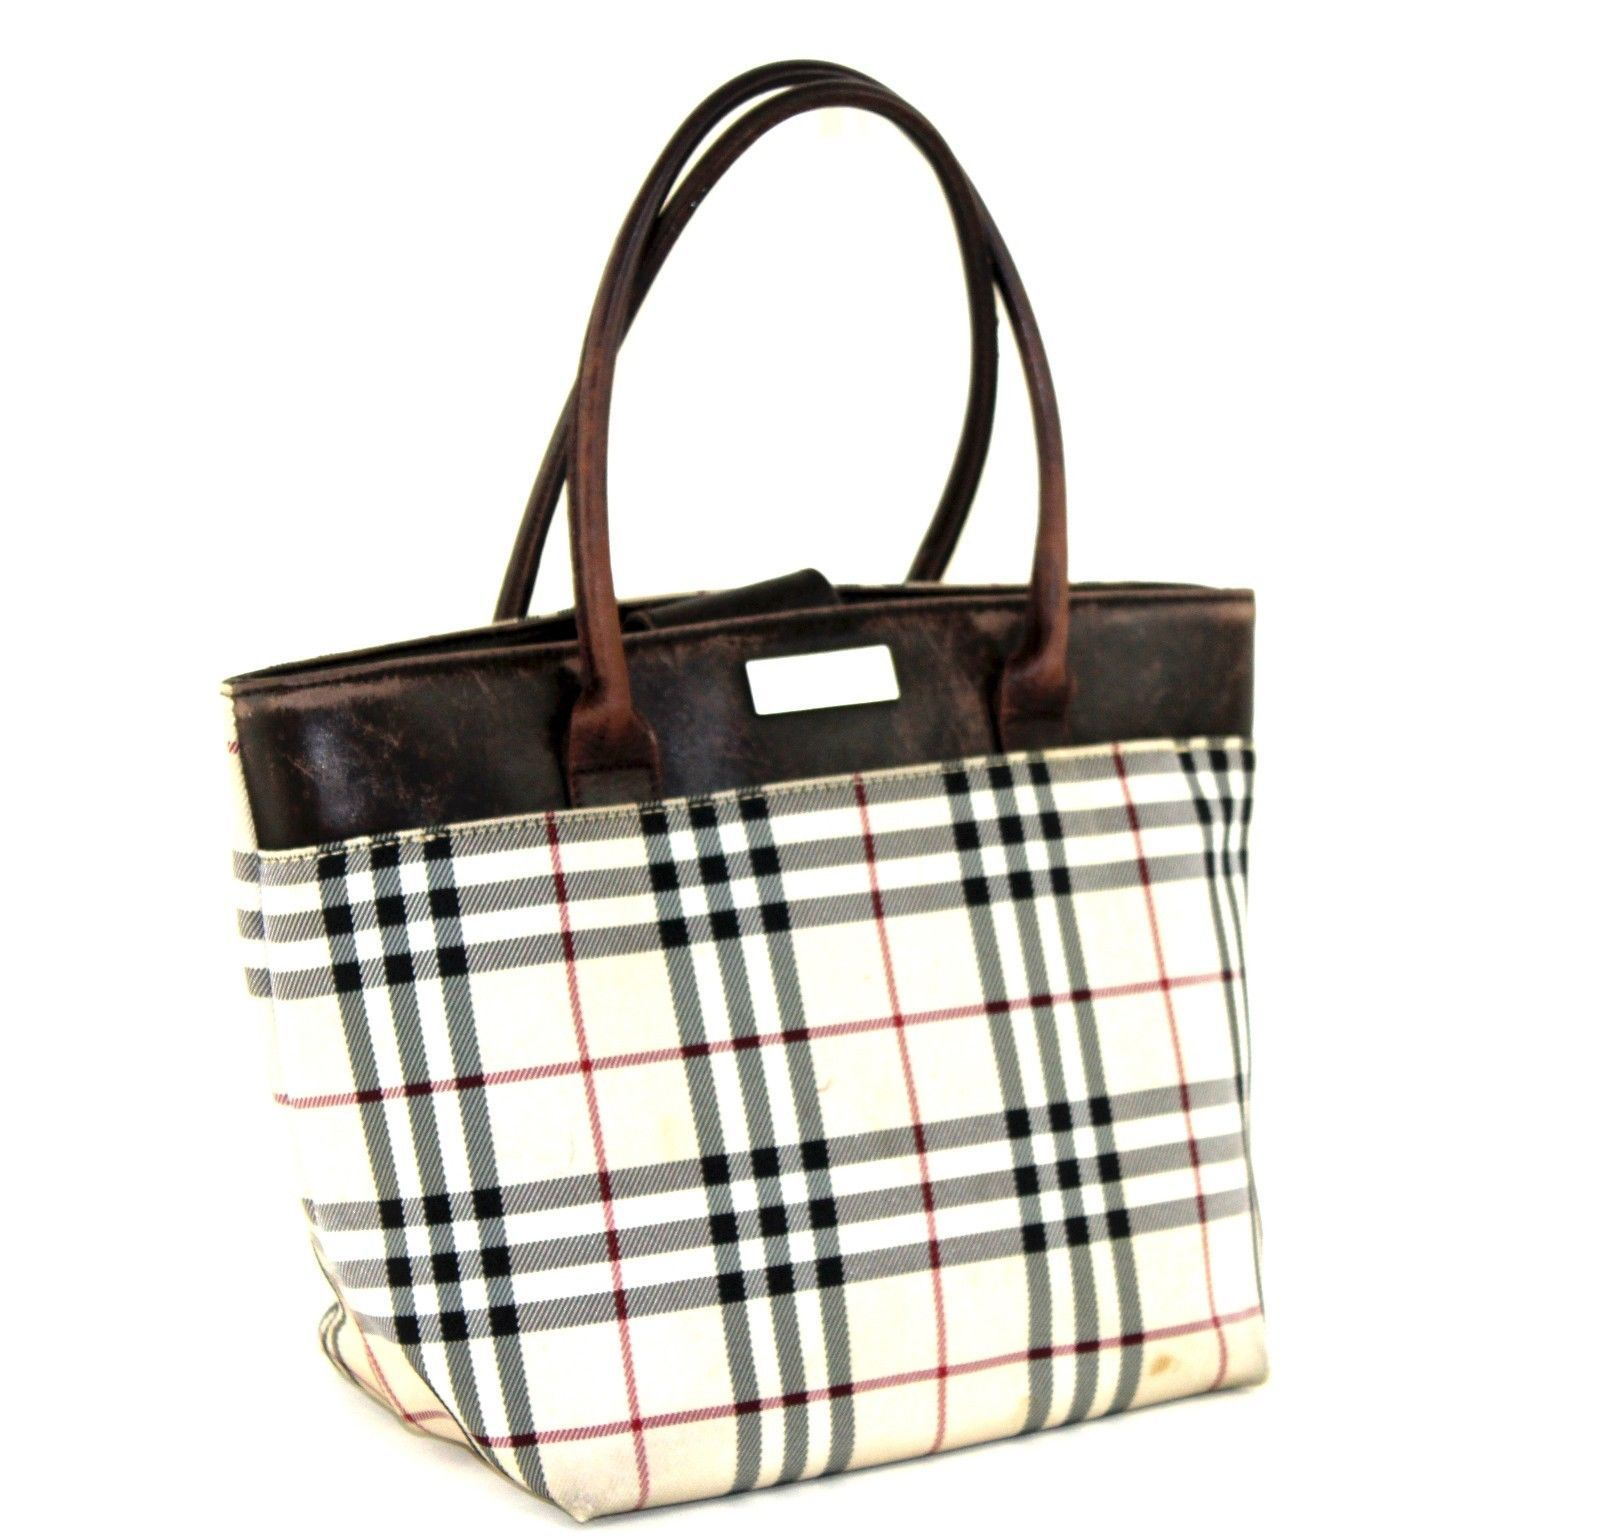 6e2d03f9caf5 57. 57. Previous. Authentic Burberry Nova Check Beige Canvas Brown Leather  Small Tote Hand Bag. Authentic Burberry ...